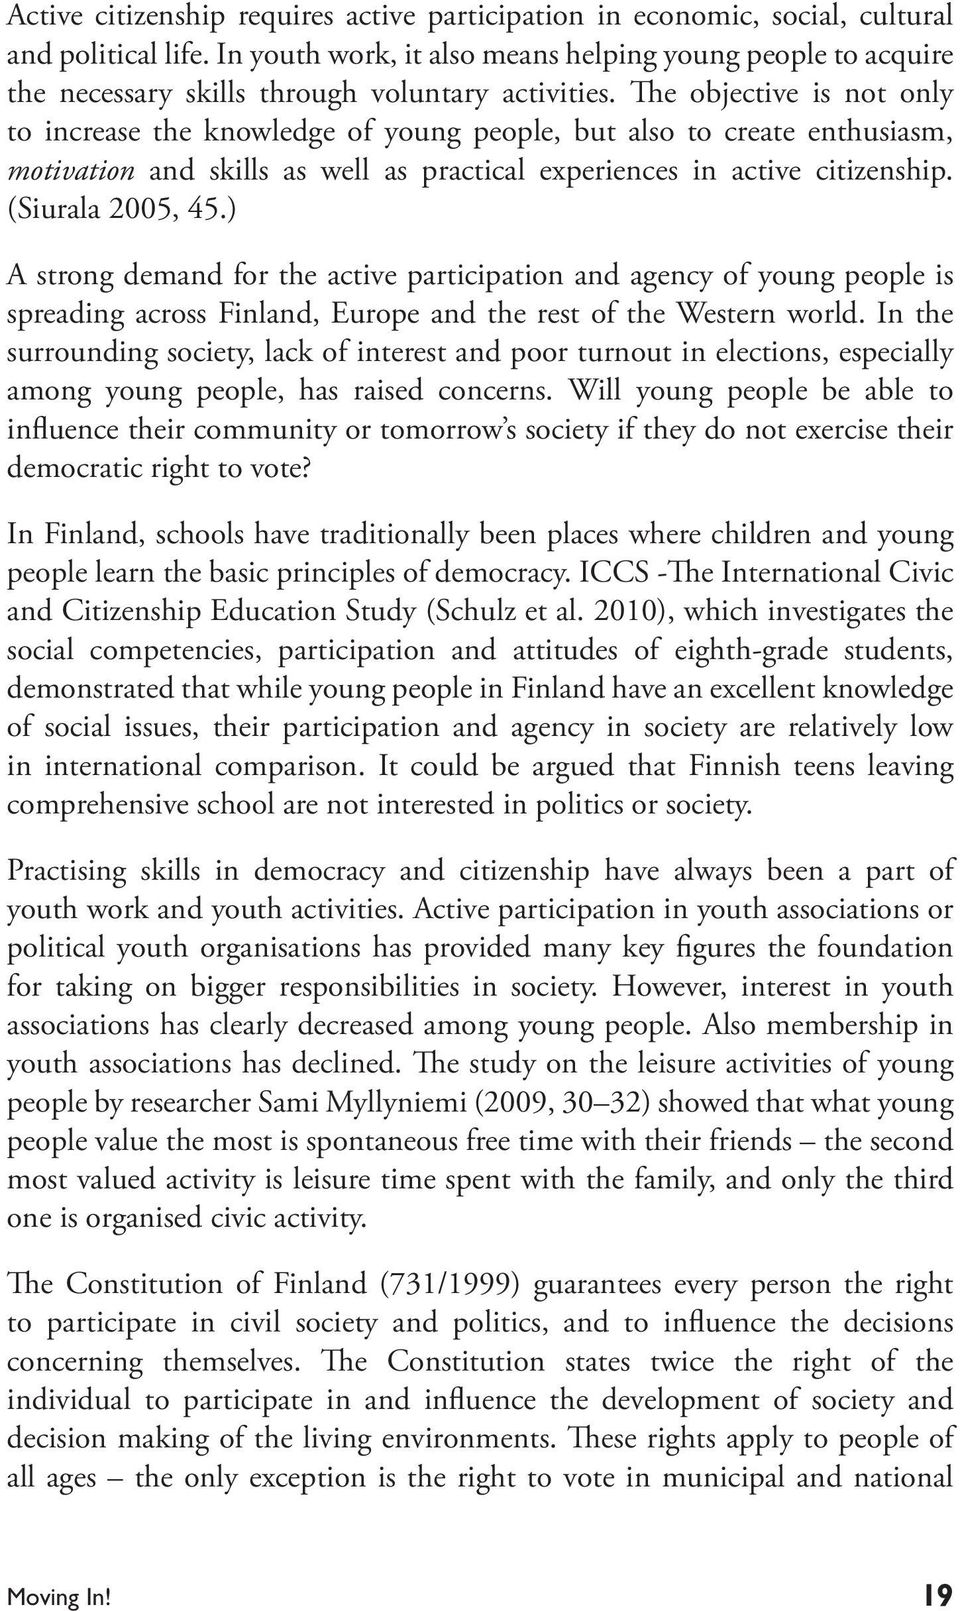 The objective is not only to increase the knowledge of young people, but also to create enthusiasm, motivation and skills as well as practical experiences in active citizenship. (Siurala 2005, 45.